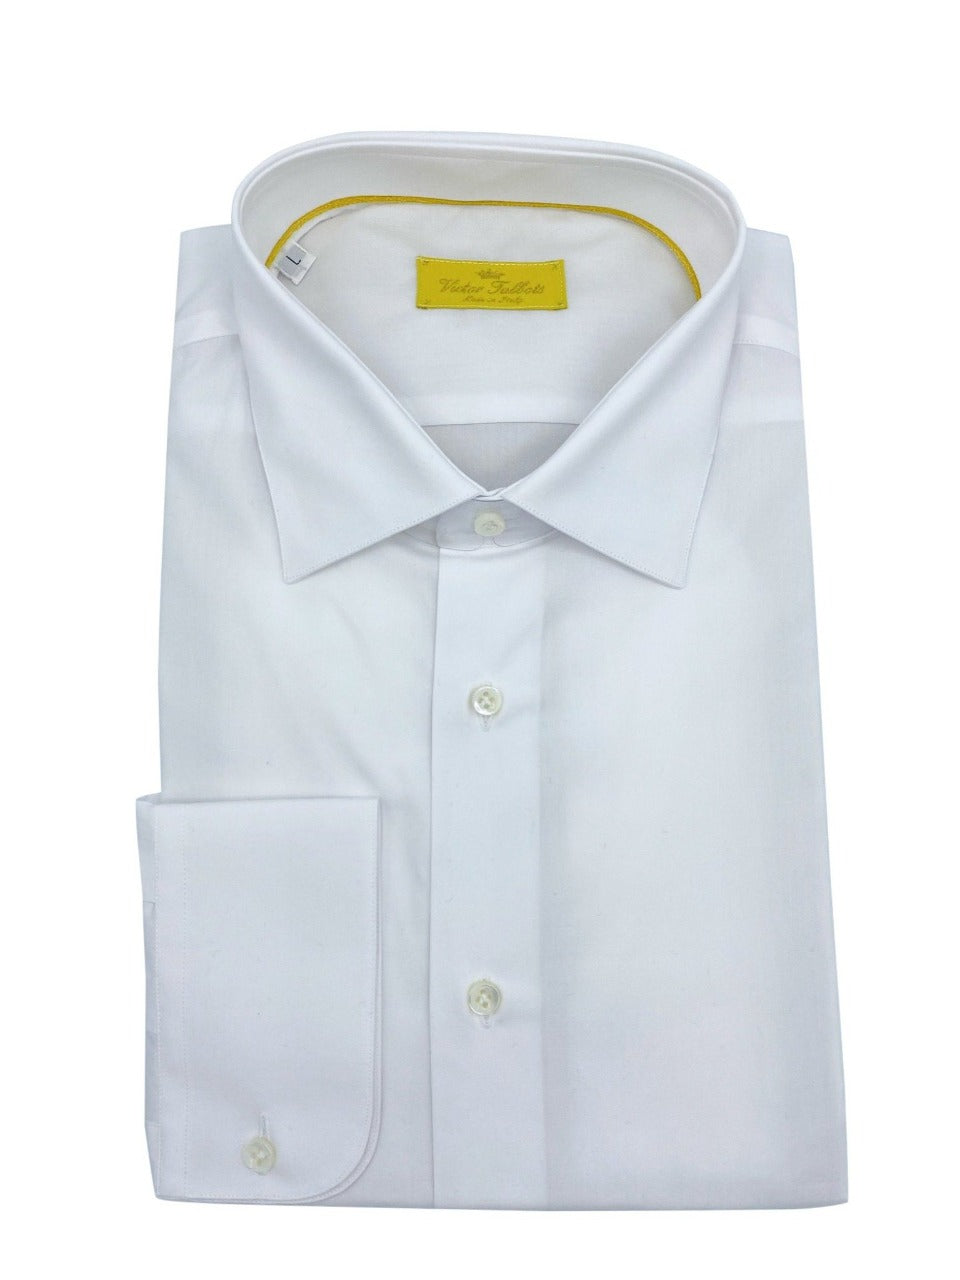 victor talbots white dress shirt made in italy